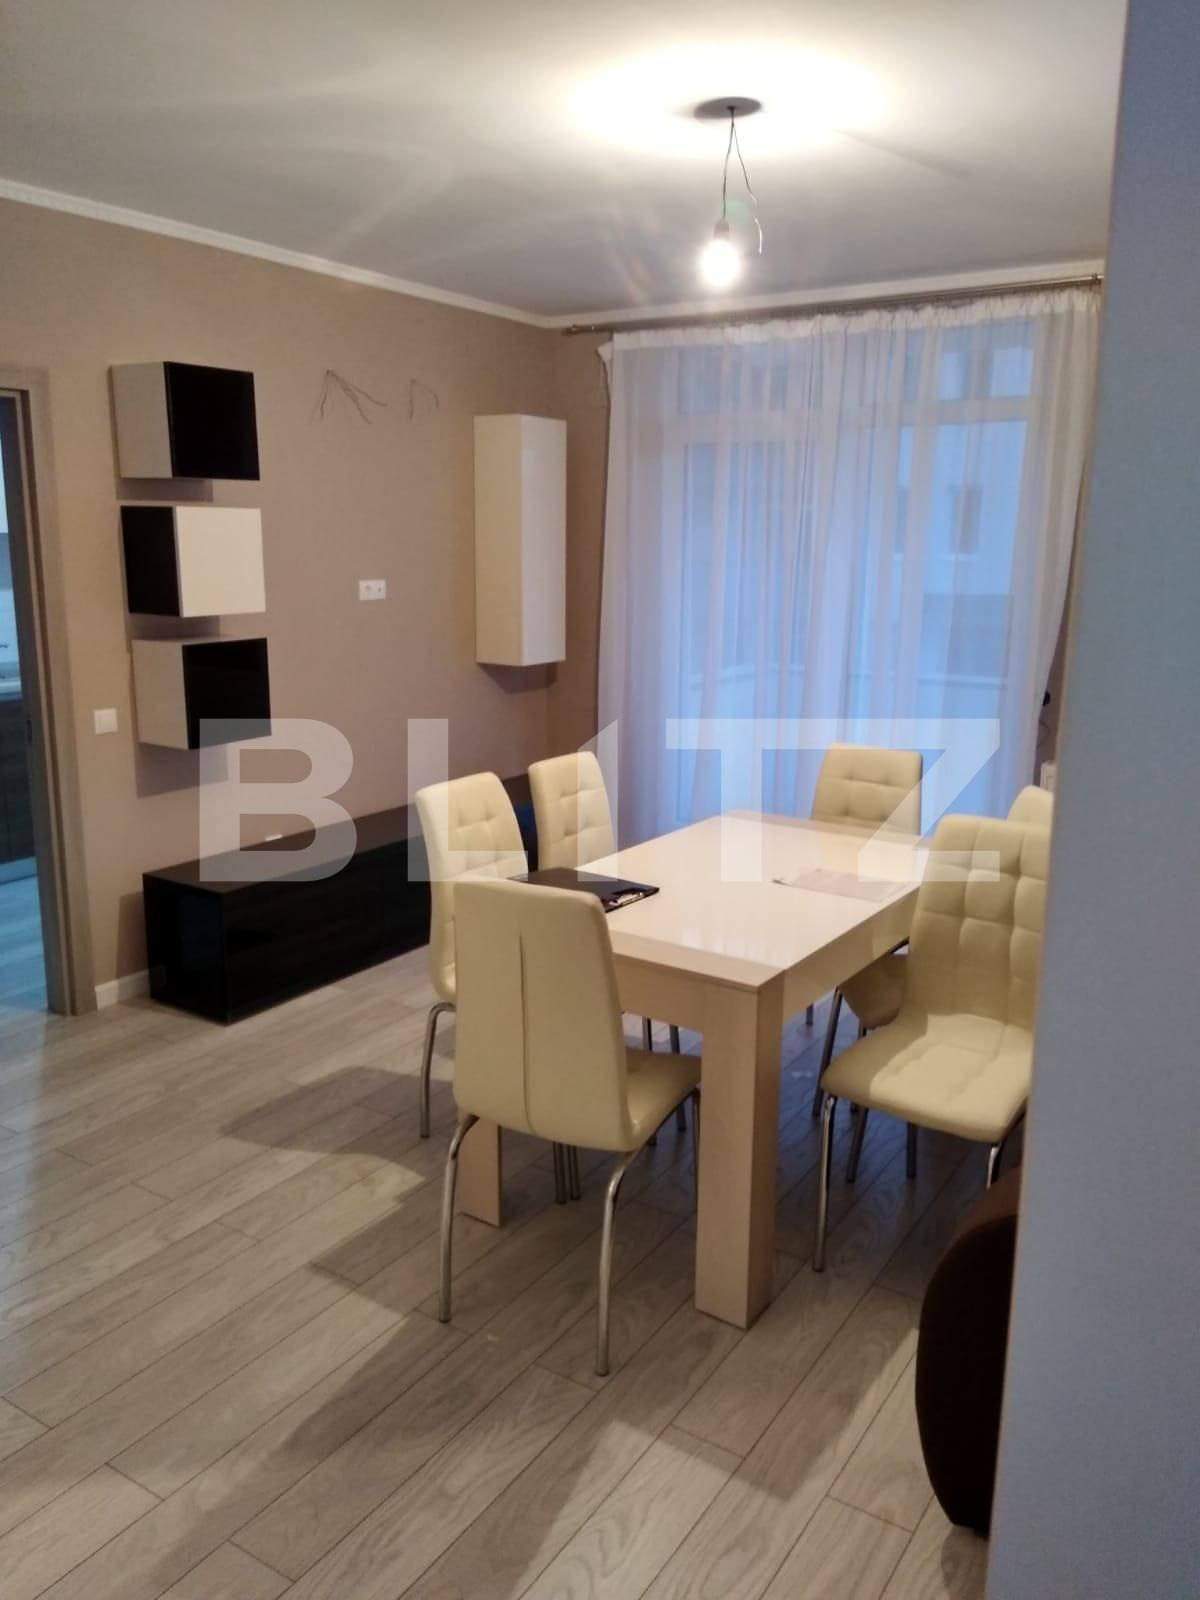 Apartament 3 camere semidecomandat, 71mp, zona Regal, Baciu